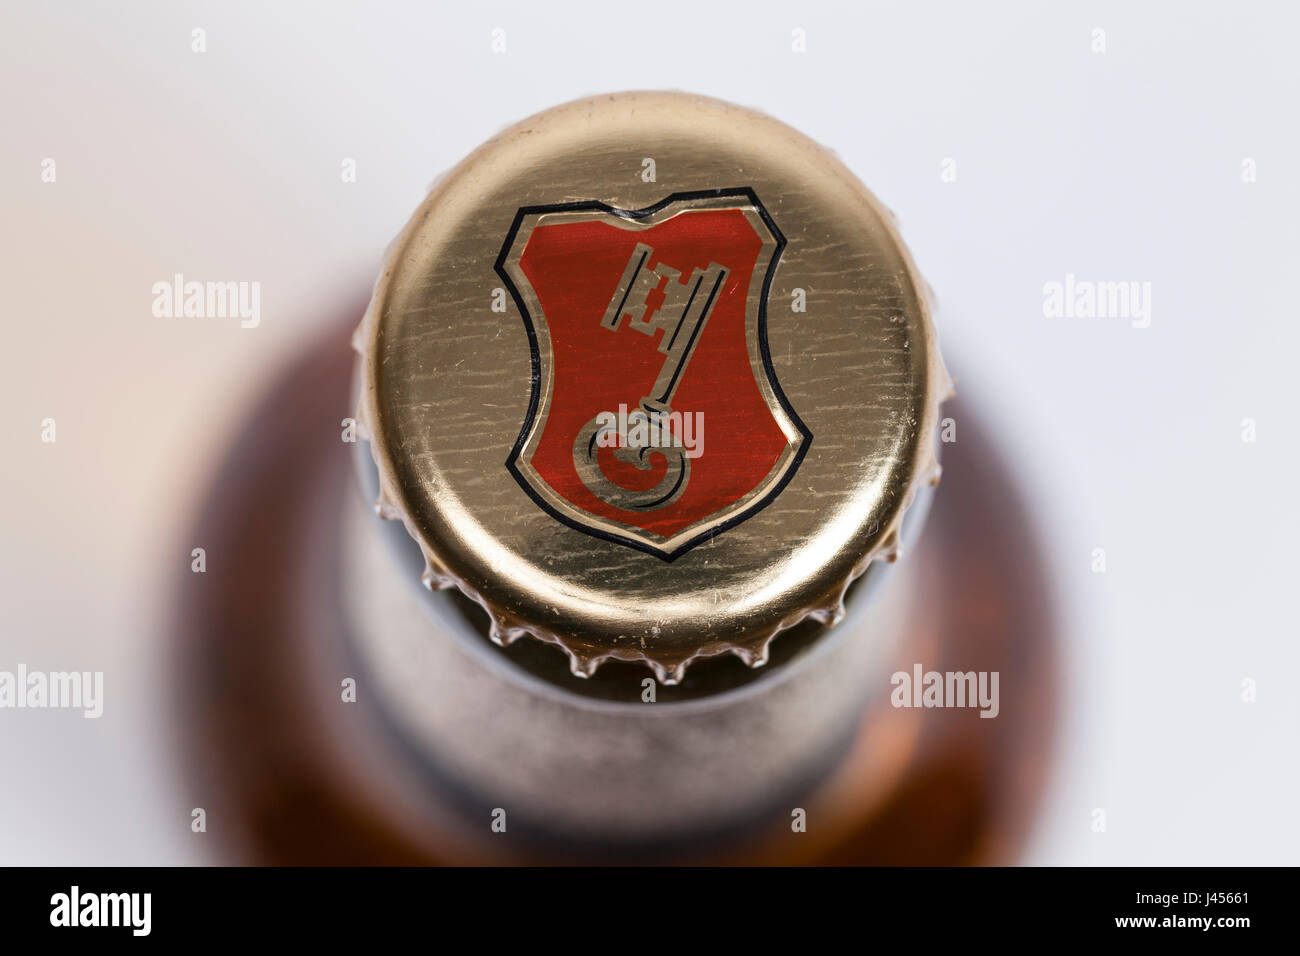 Beck's bottle cover - Stock Image